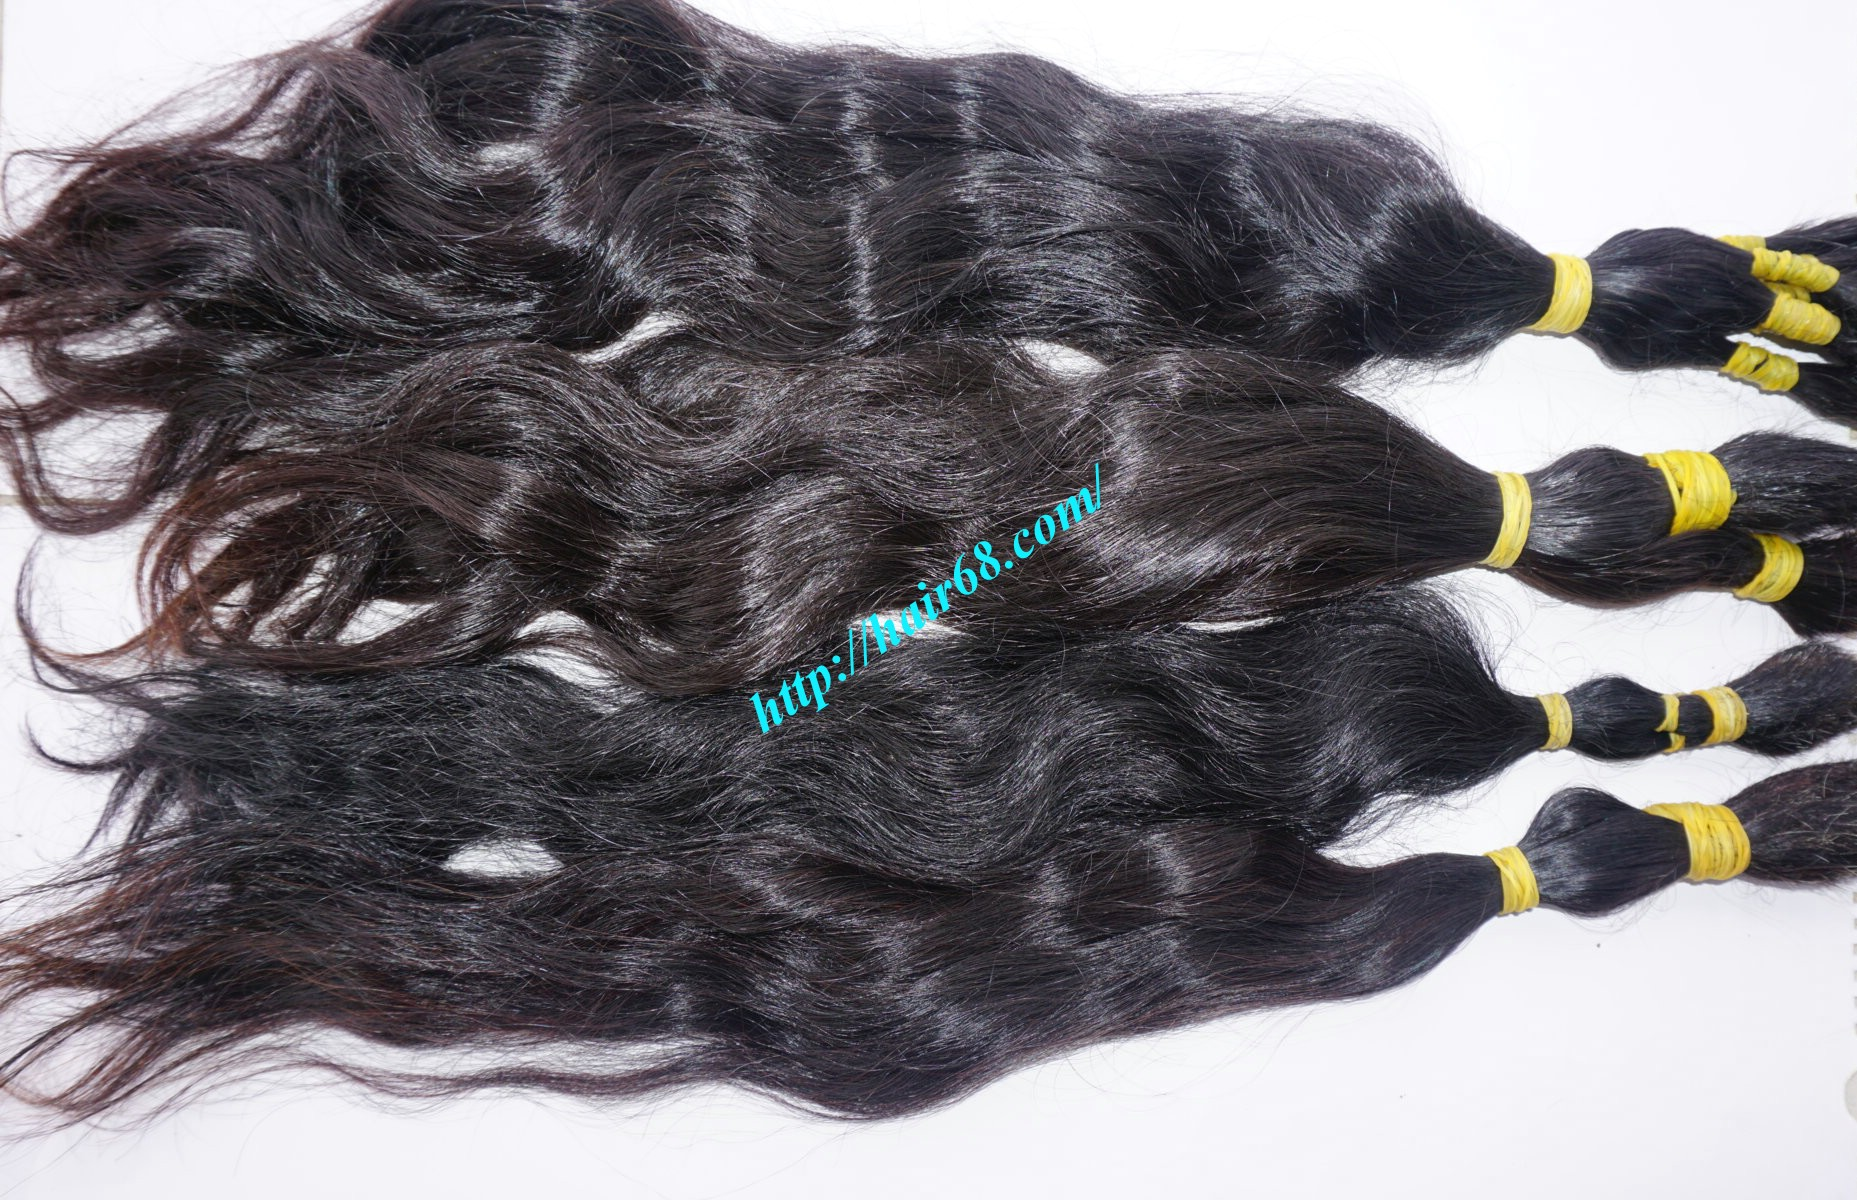 12 inch natural human hair extensions 7